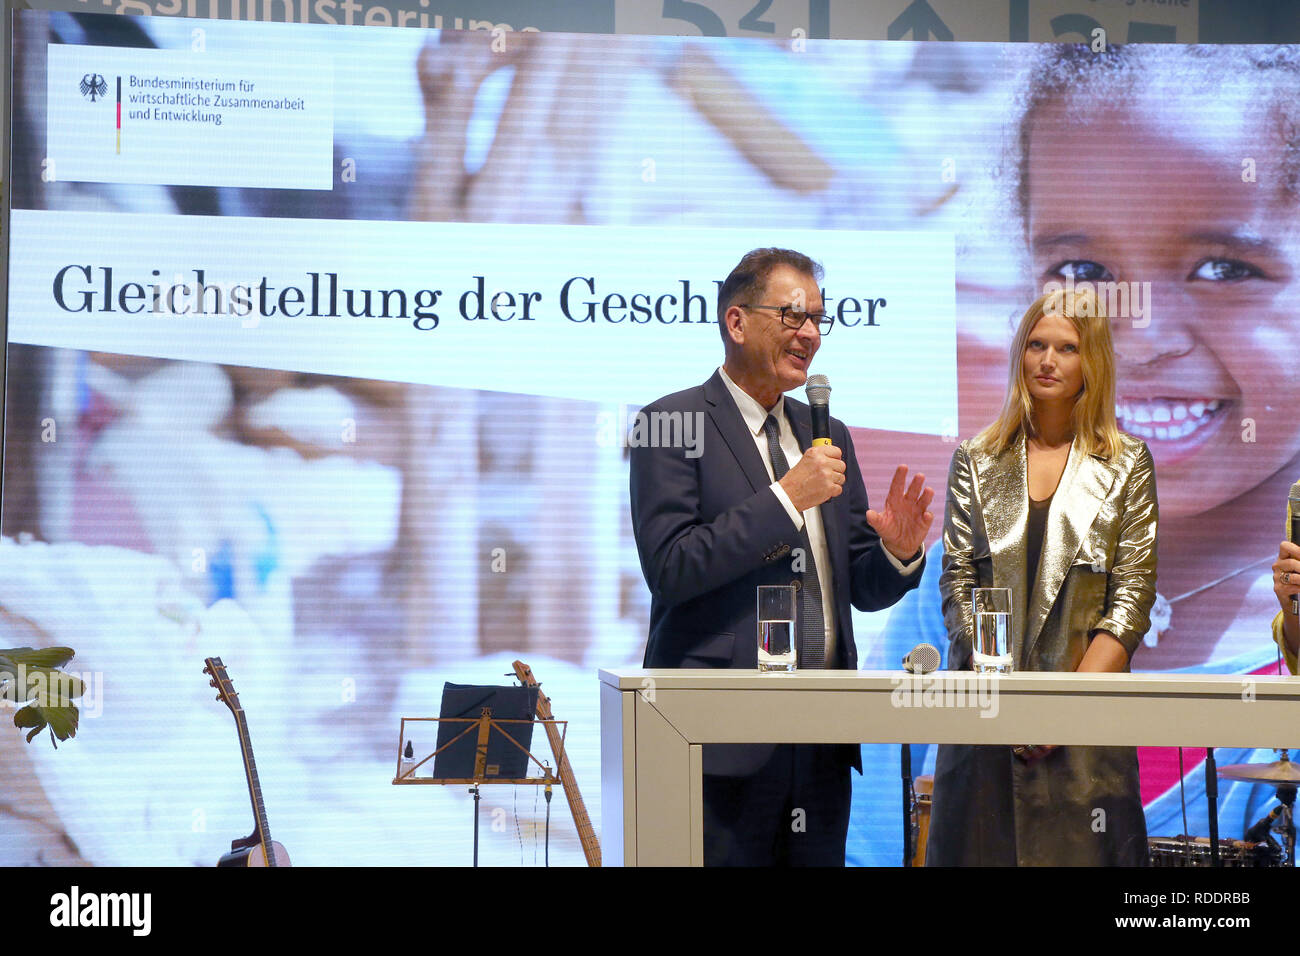 "Berlin, Germany. 18th Jan, 2019. Gerd Müller (CSU), German Development Minister, and photo model Toni Garrn are taking part in an event at the International Green Week under the motto: ""EINEWELT ohne Hunger ist möglich - mit fairem Einkauf und fairer Produktion"" (""ONE World without Hunger is Possible - with Fair Shopping and Fair Production""). The fair for food, agriculture and horticulture took place for the first time in Berlin in 1926. The partner country this year is Finland. Credit: Wolfgang Kumm/dpa/Alamy Live News Stock Photo"